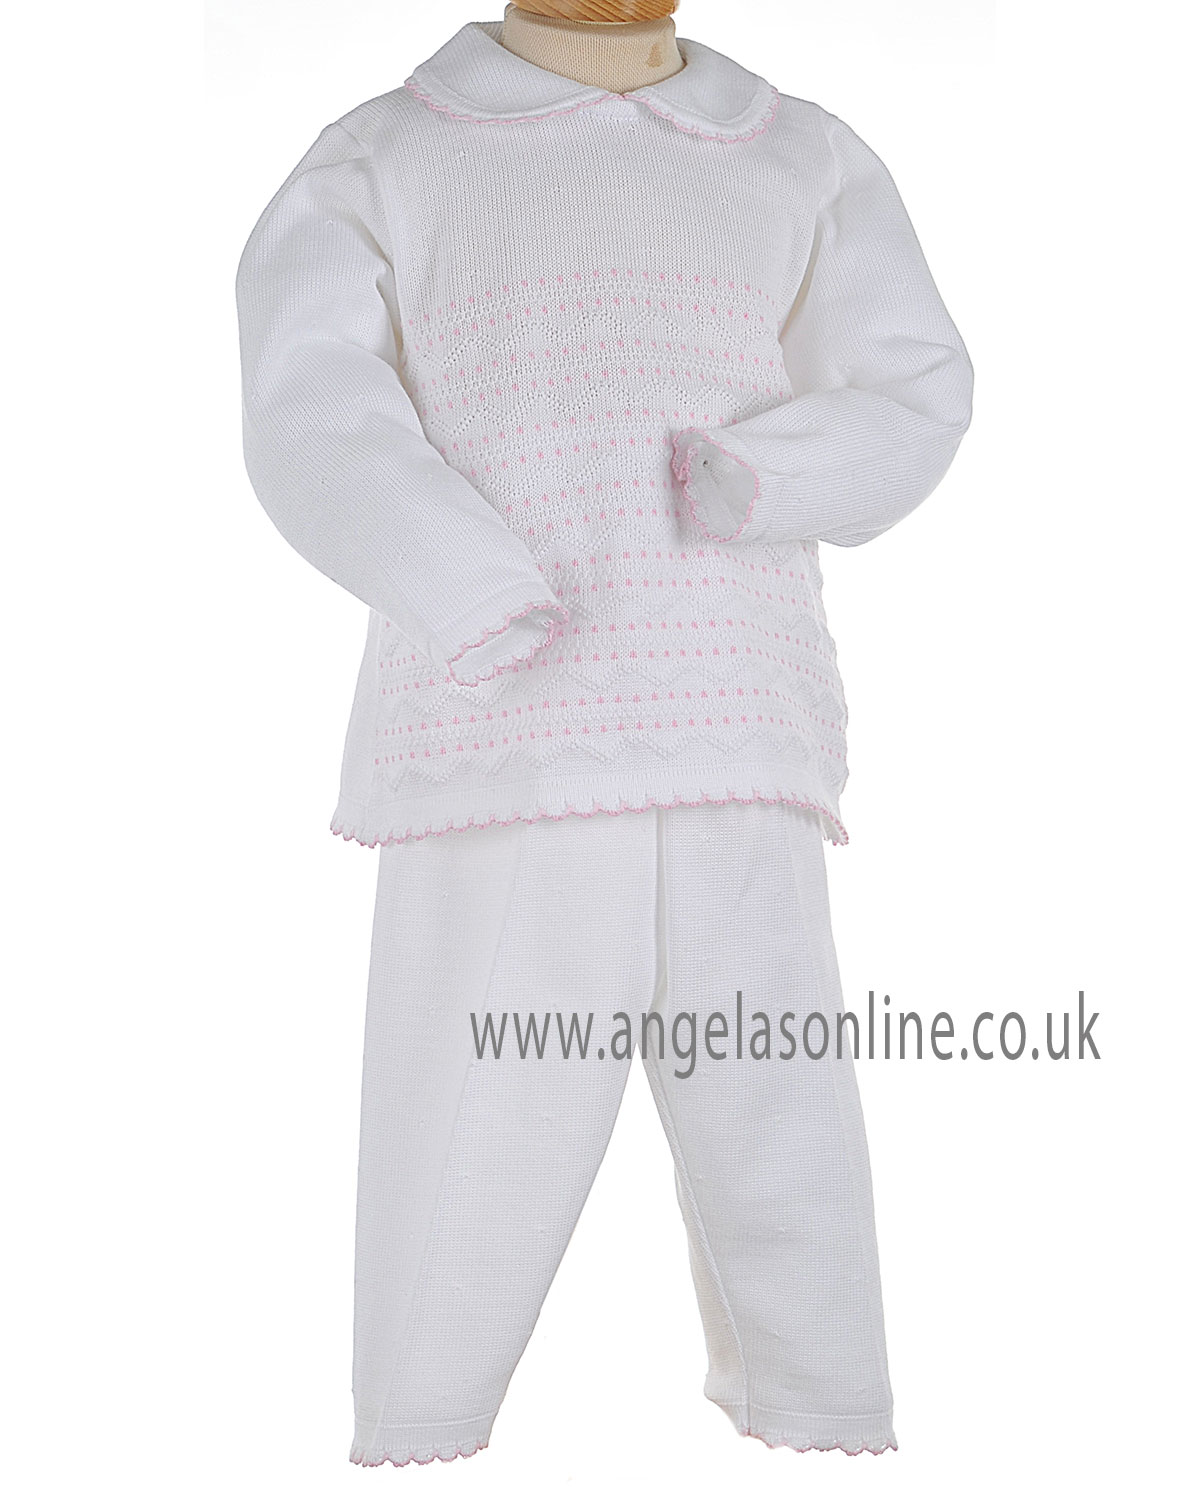 a87bc1ab95195 Winter 2016 SALE Pex Baby Girls Knitted White Top & Trousers B5764